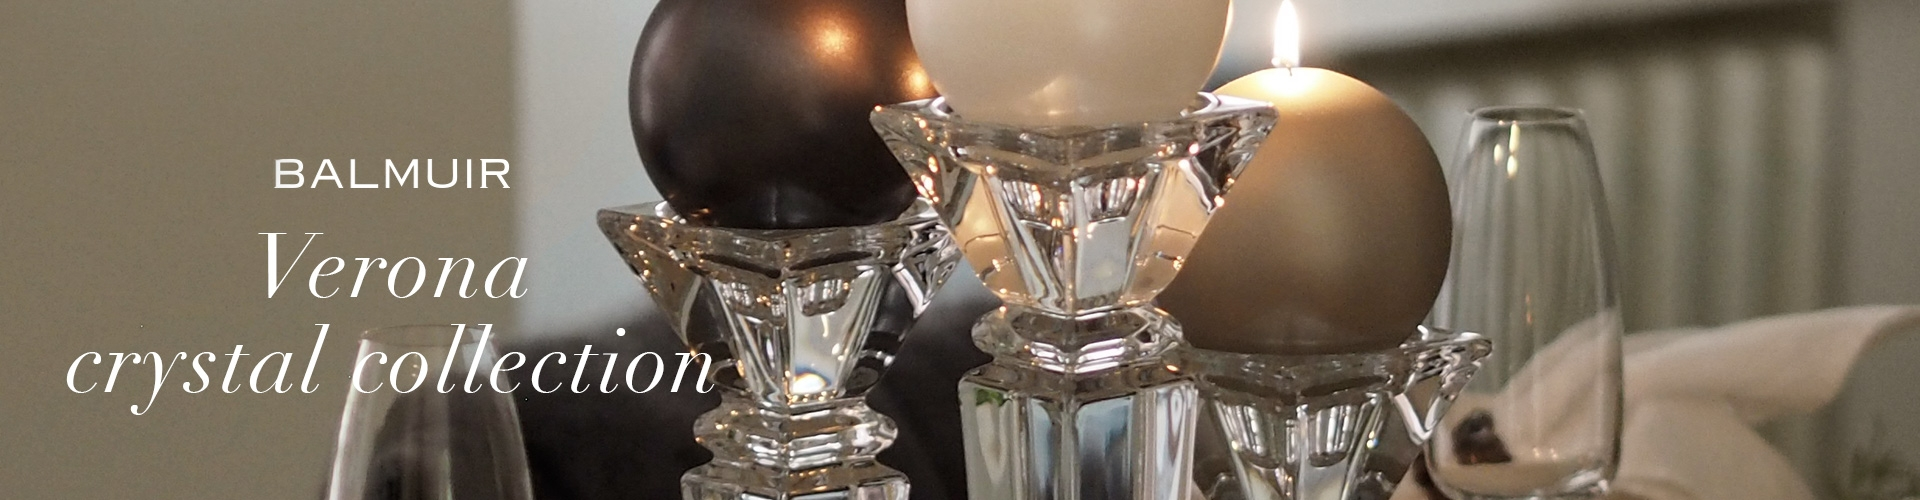 Verona crystal collection